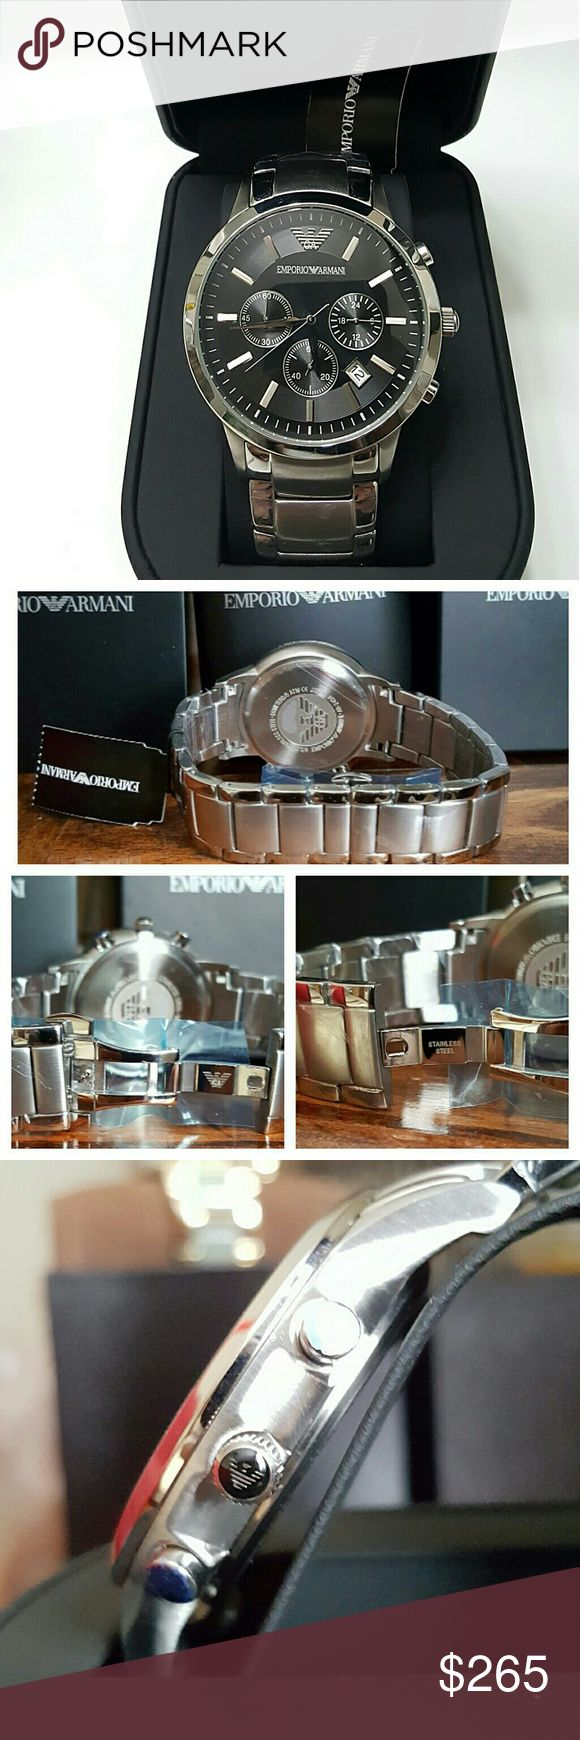 NWT Emporio Armani Chronograph Stainless watch NWT Emporio Armani Mens CHRONOGRAPH STAINLESS STEEL WATCH.    FIRM PRICE FIRM PRICE FIRM PRICE   $265.00 . AUTHENTIC WATCH  . AUTHENTIC BOX  . AUTHENTIC MANUAL     SHIPPING  PLEASE ALLOW FEW BUSINESS DAYS FOR ME TO SHIPPED IT OFF.I HAVE TO GET IT FROM MY WAREHOUSE.    THANK YOU FOR YOUR UNDERSTANDING emporio Armani  Accessories Watches